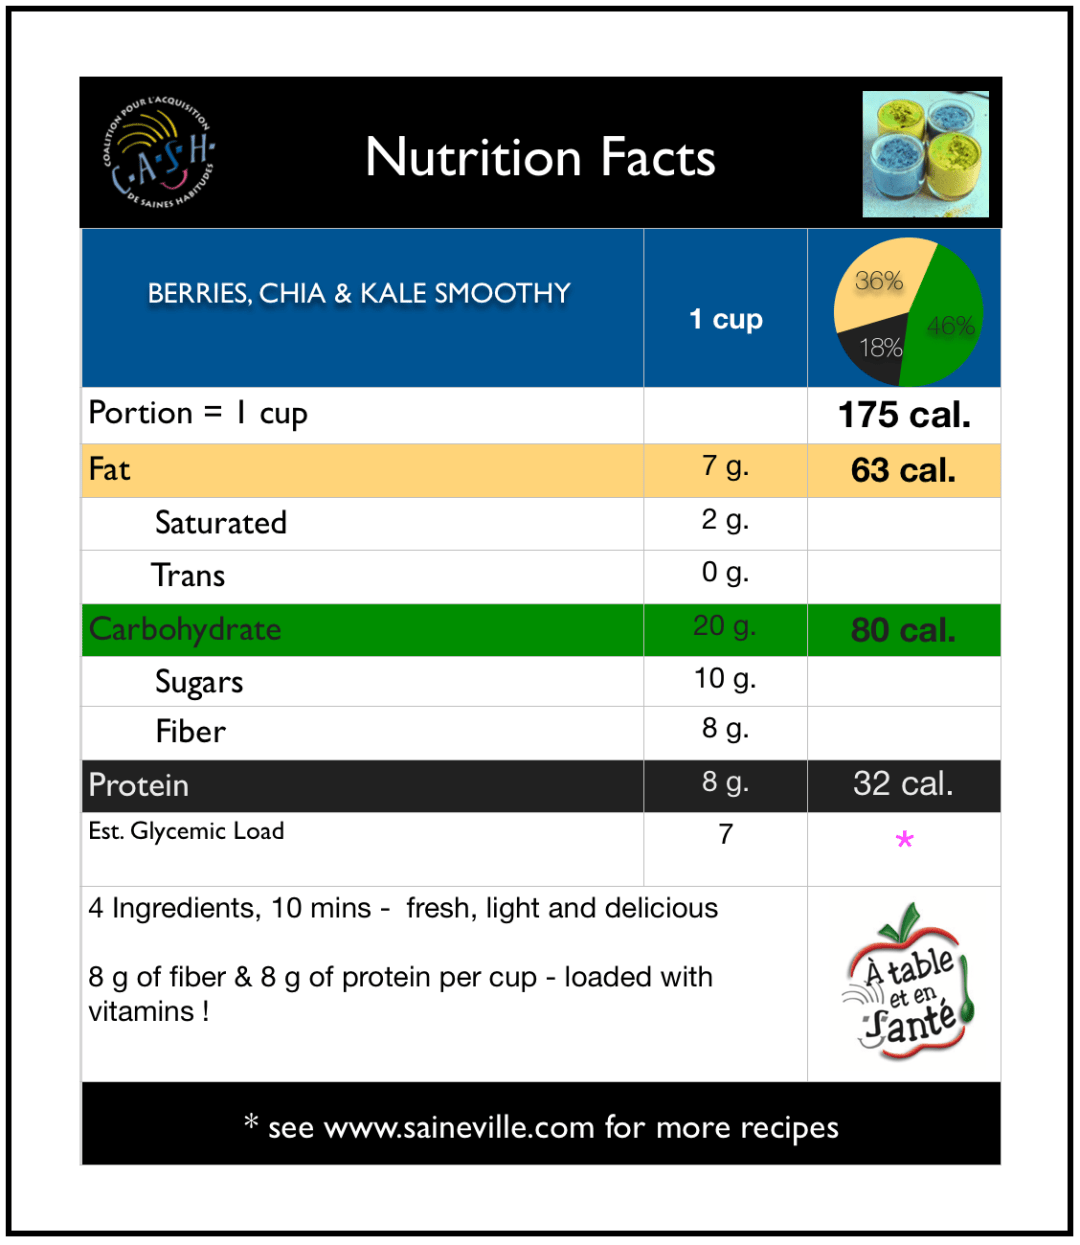 Nutrition Facts - Berries, Chia and Kale Smoothy